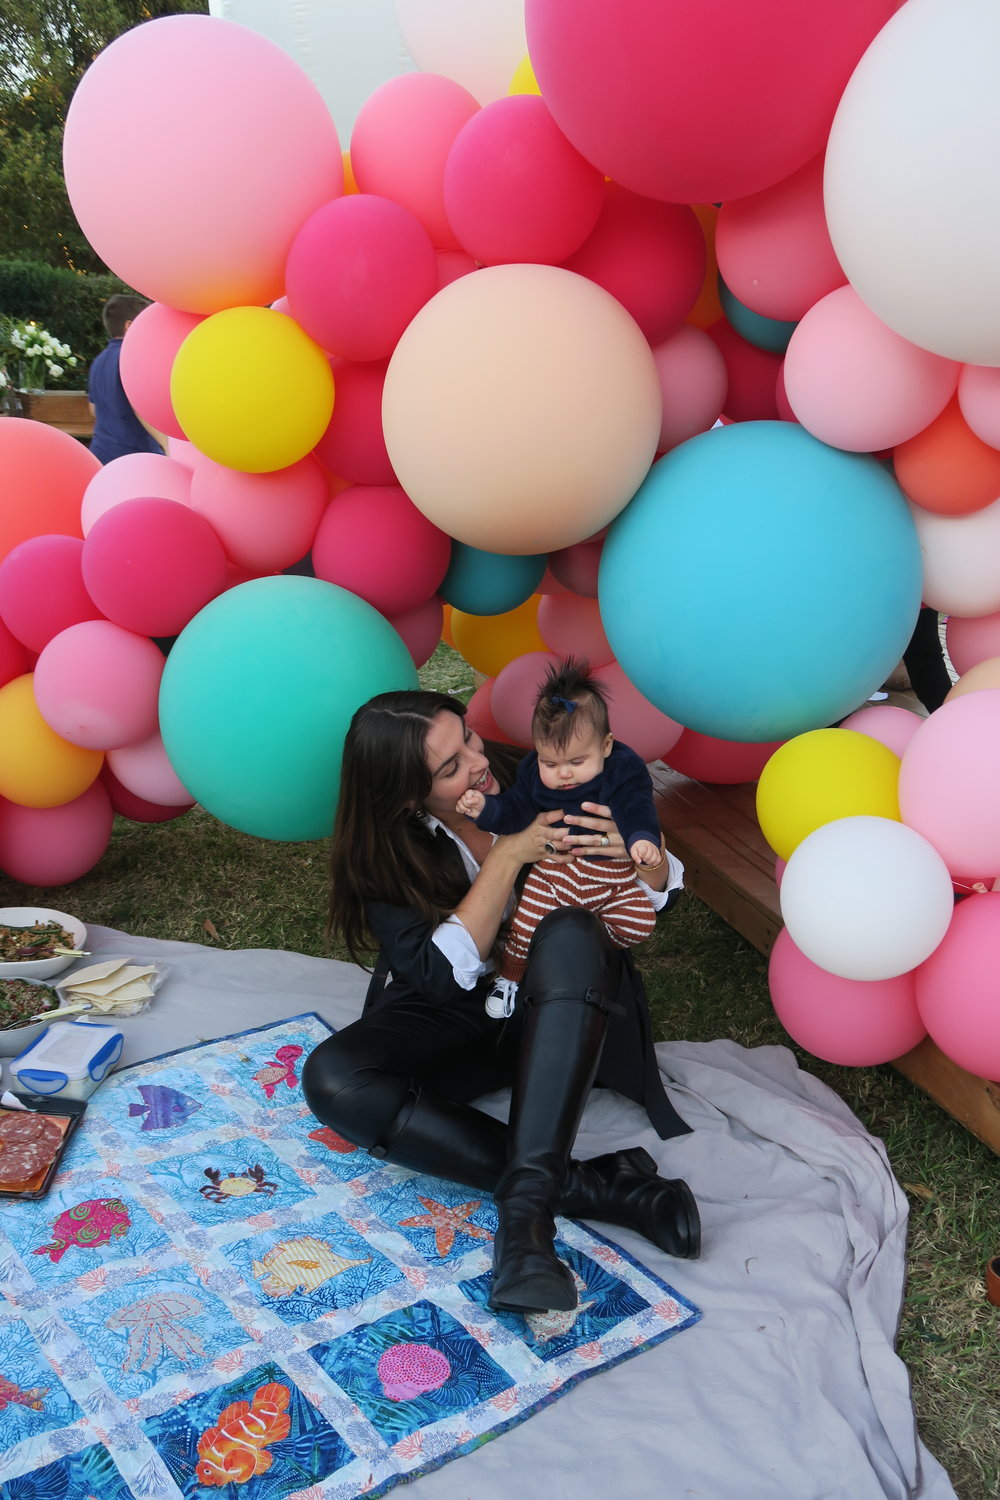 sian redgrave and baby having picnic.JPG